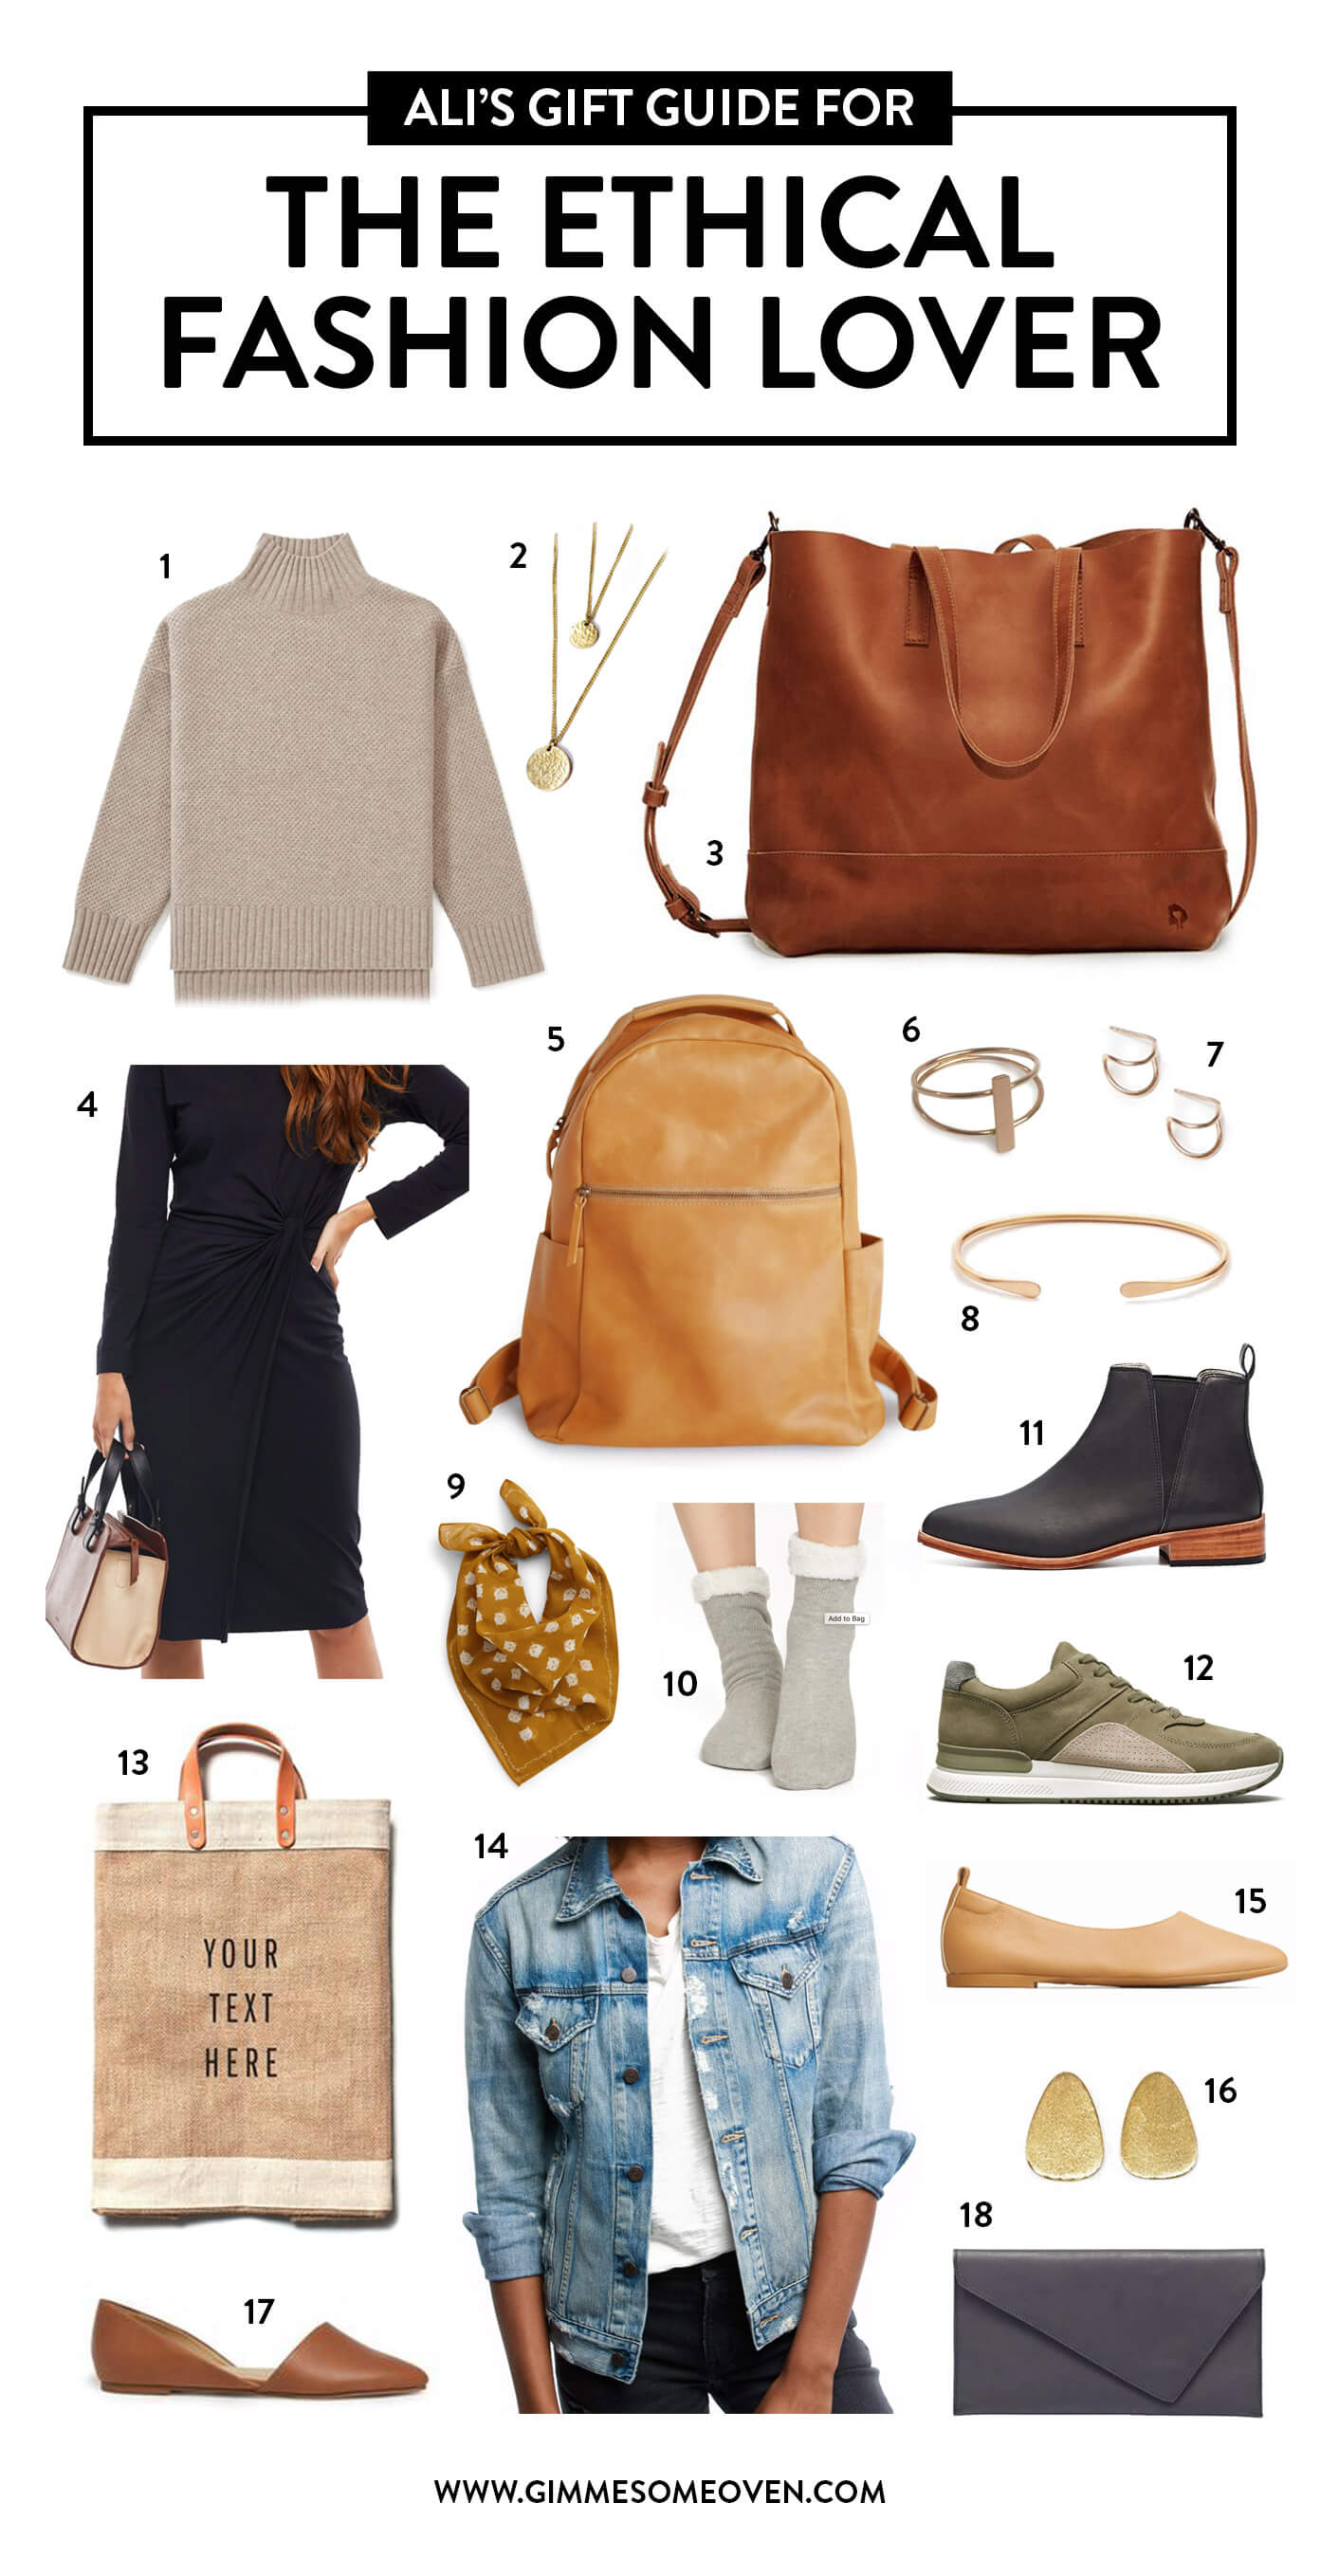 Gift Guide for the Ethical Fashion Lover